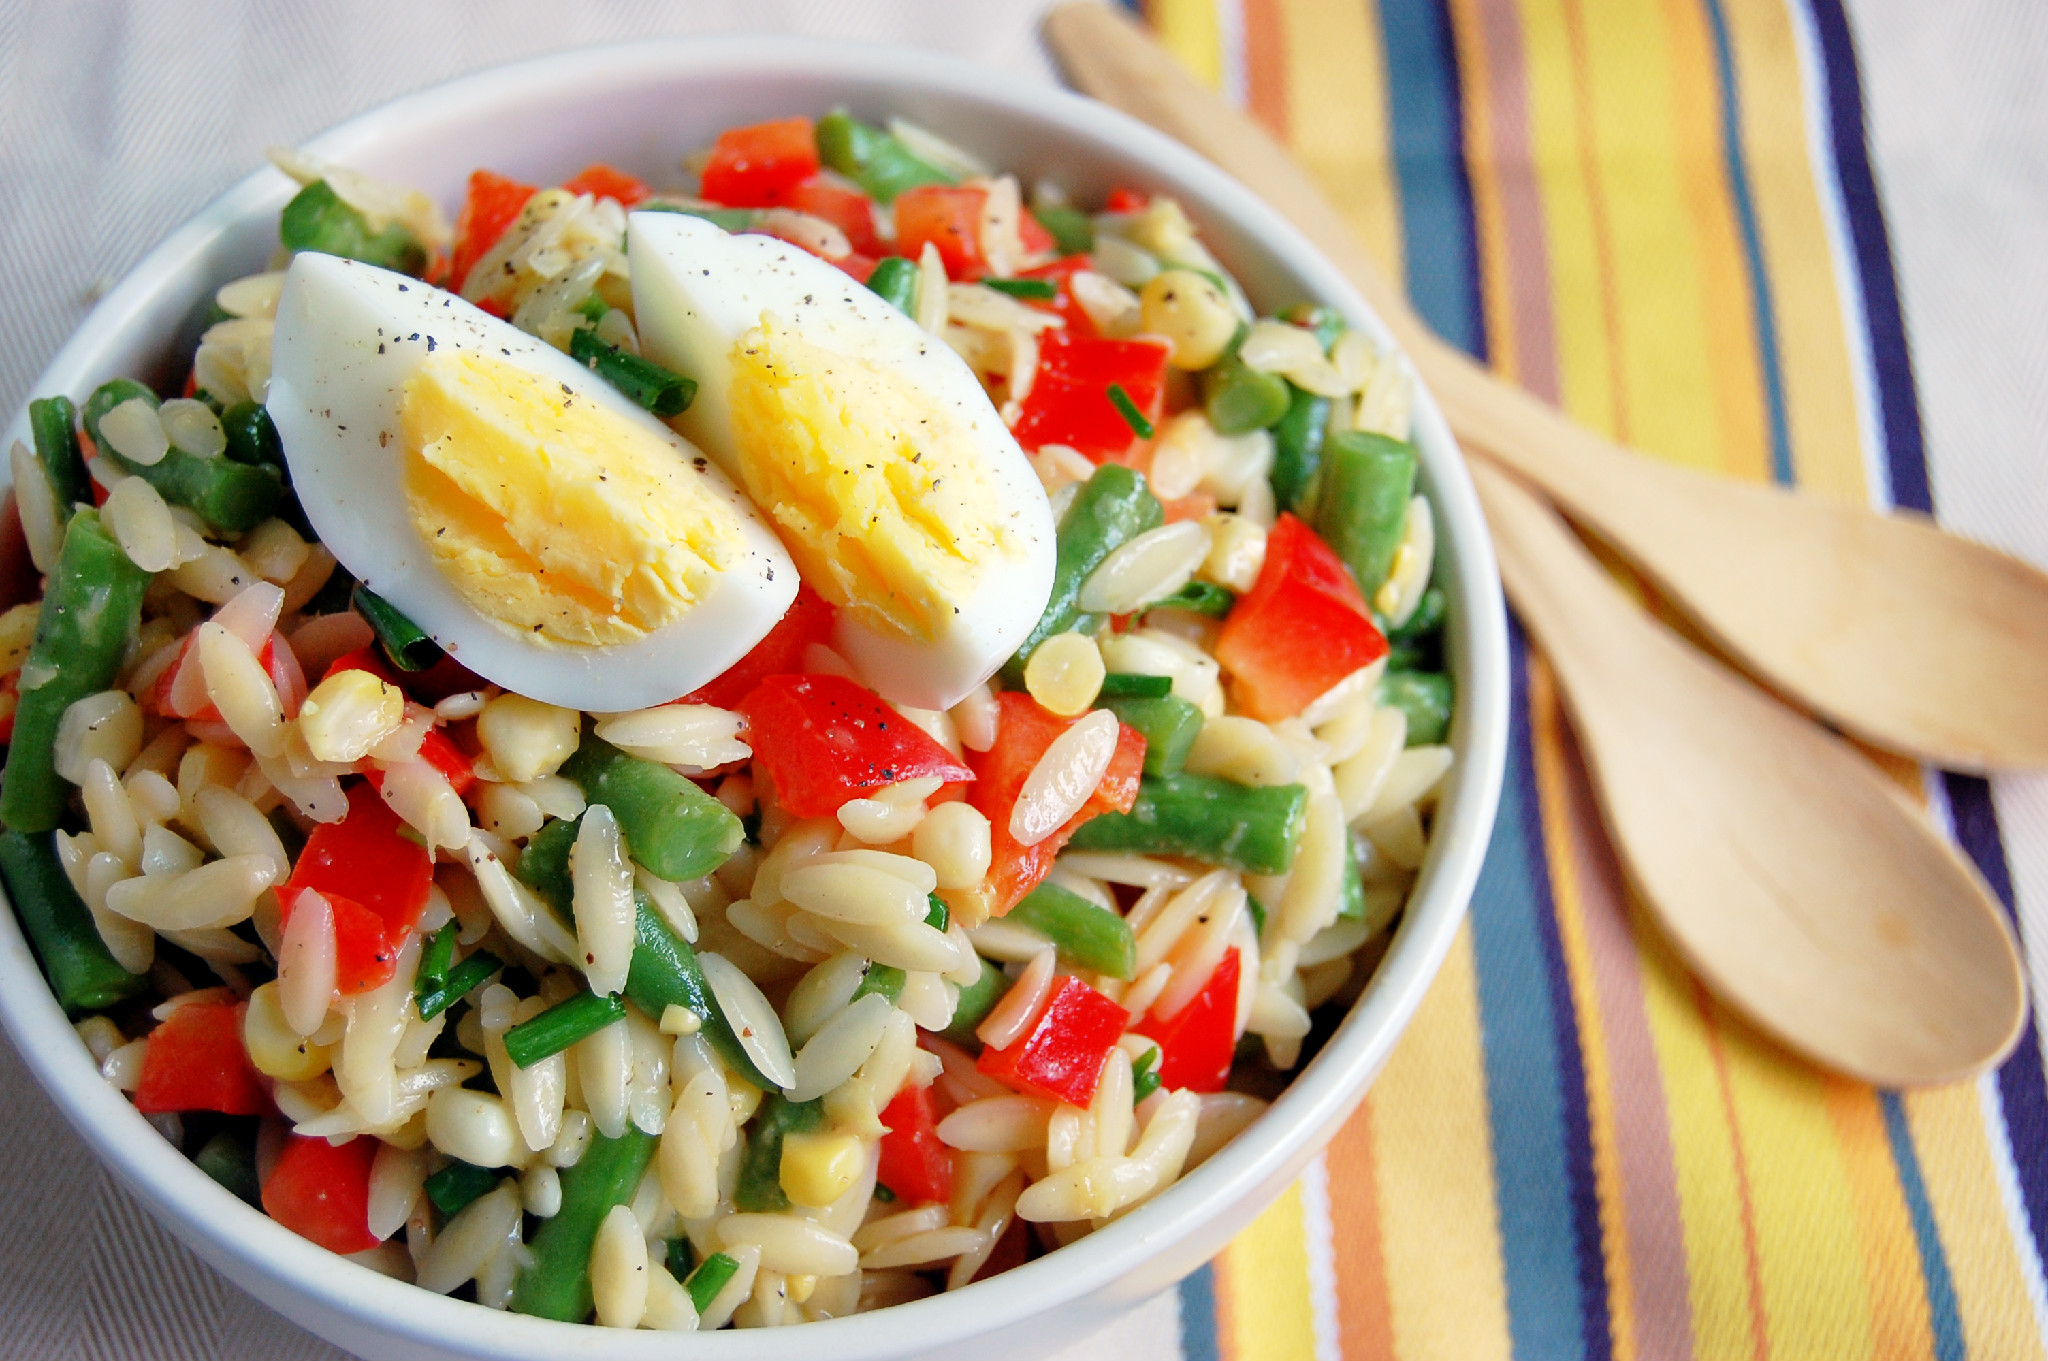 Summer Vegetable Orzo Salad with a Lemon Dressing